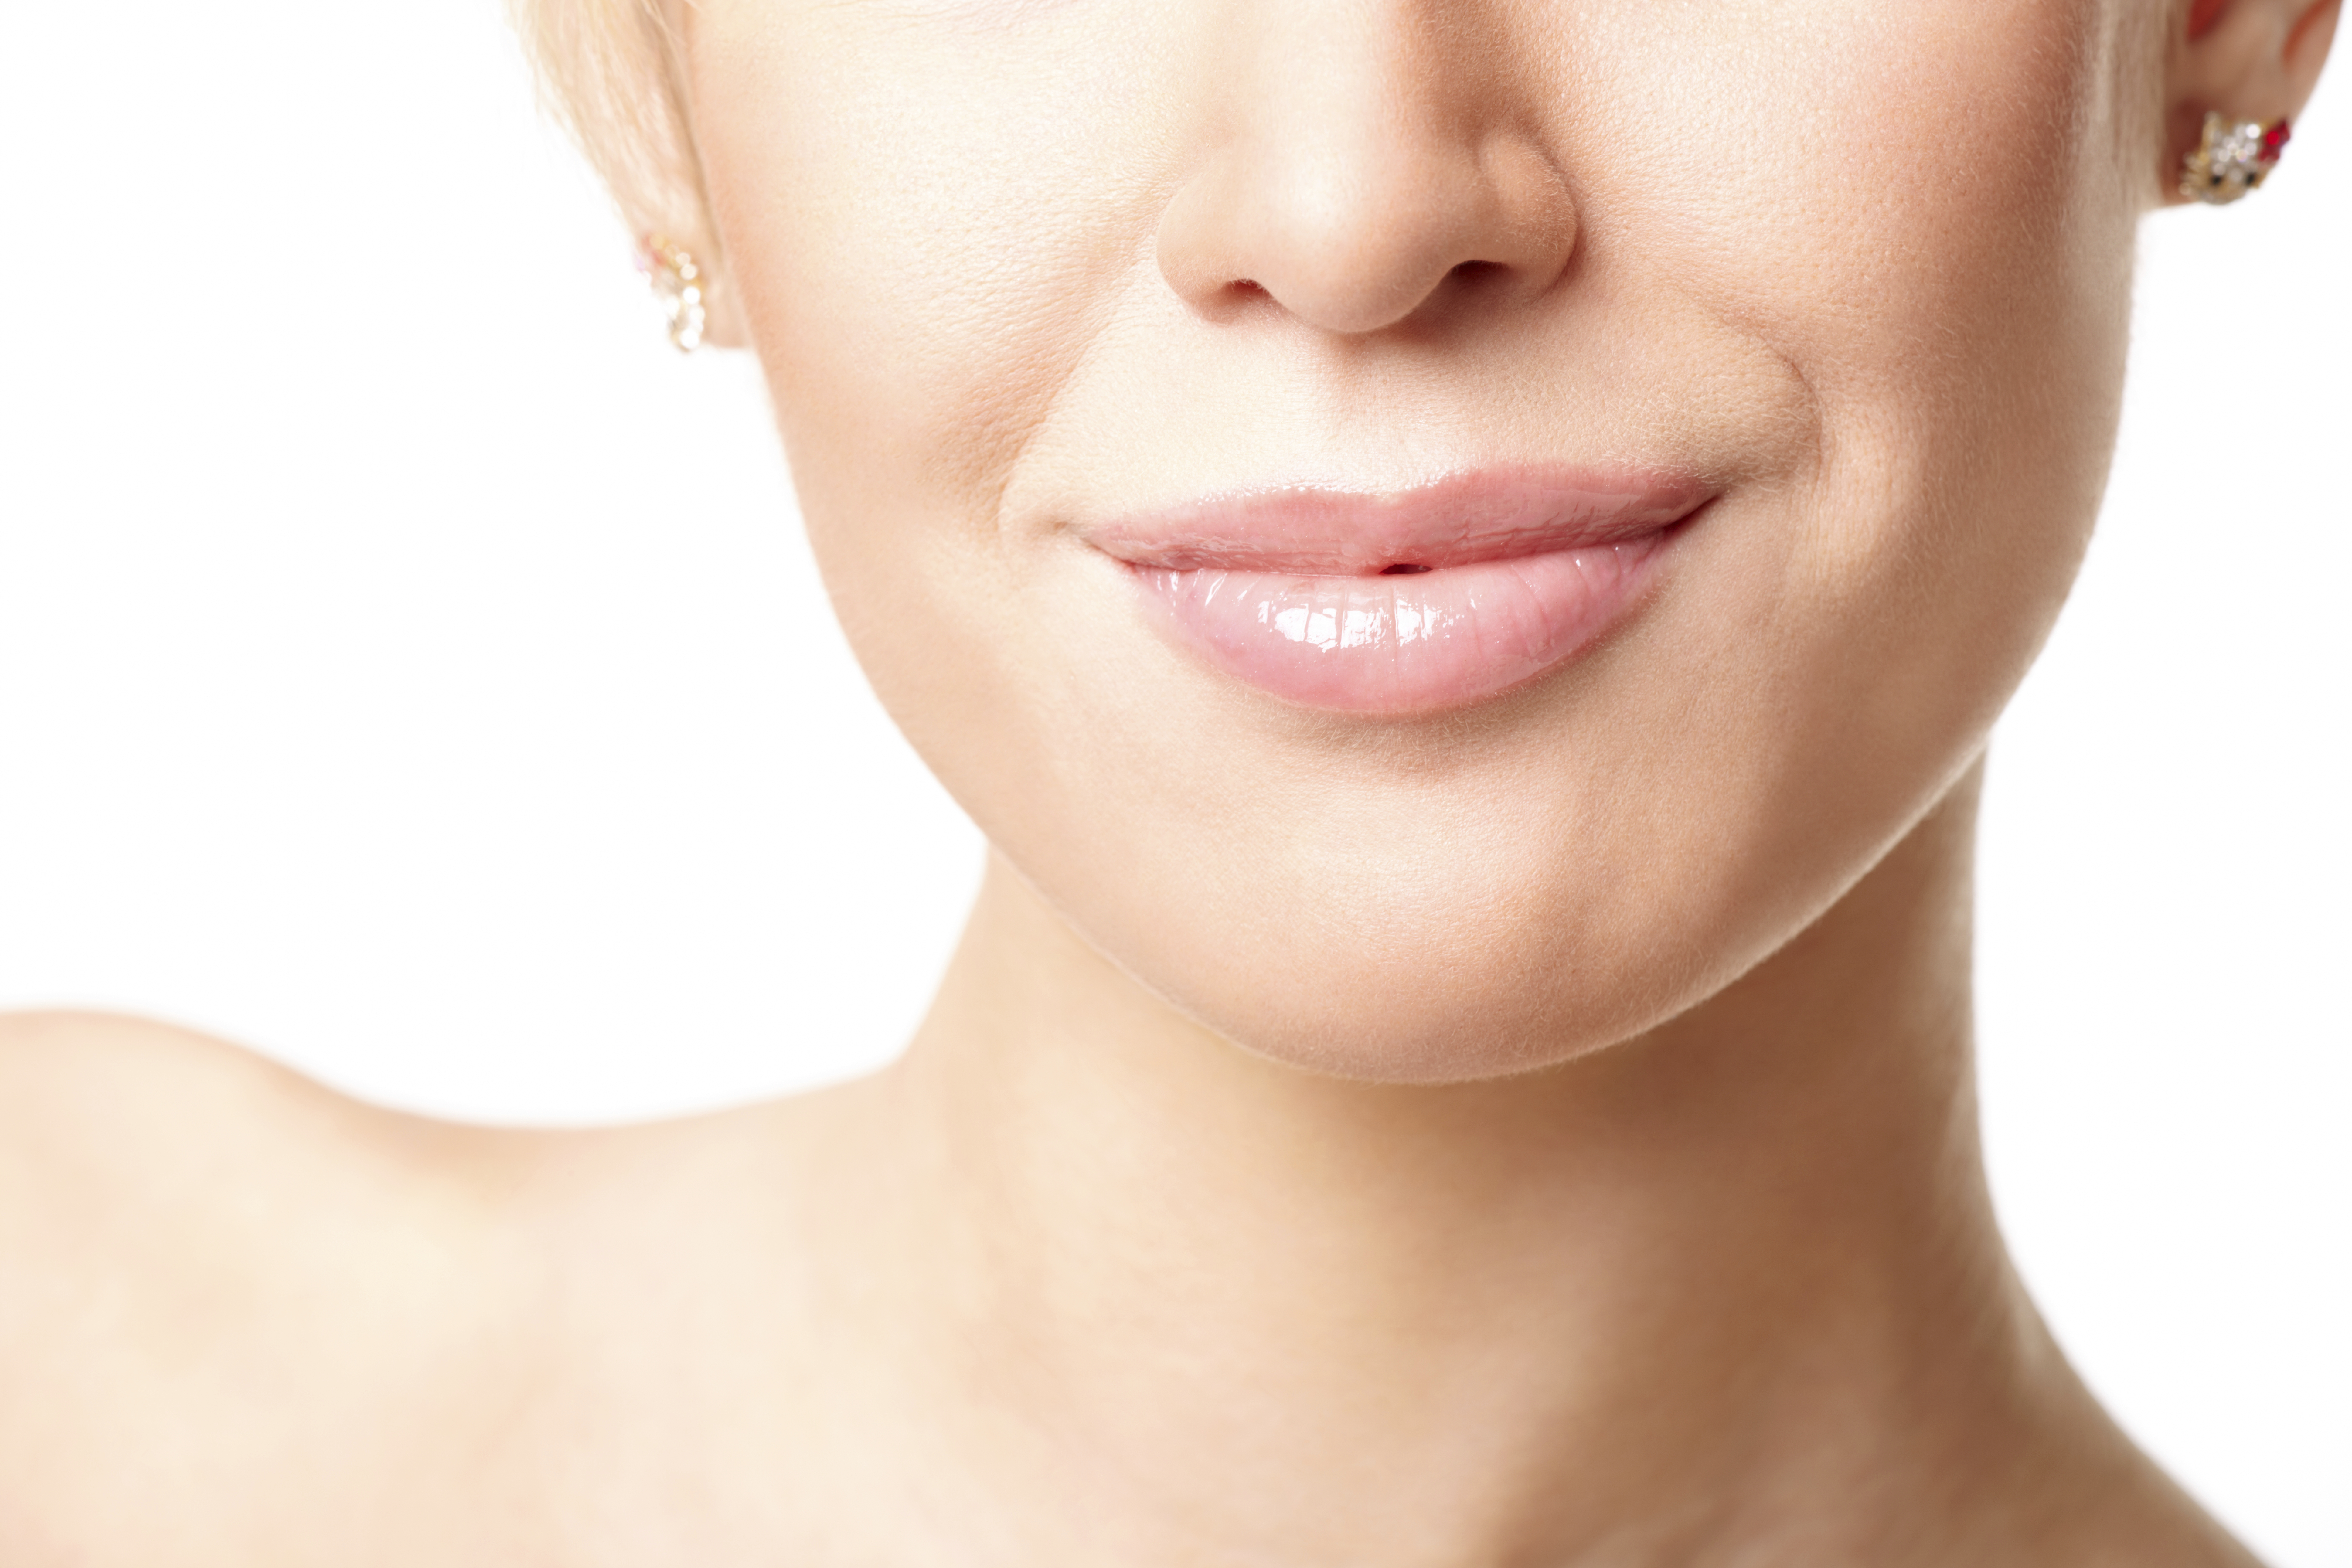 The misconceptions facial fillers advise you